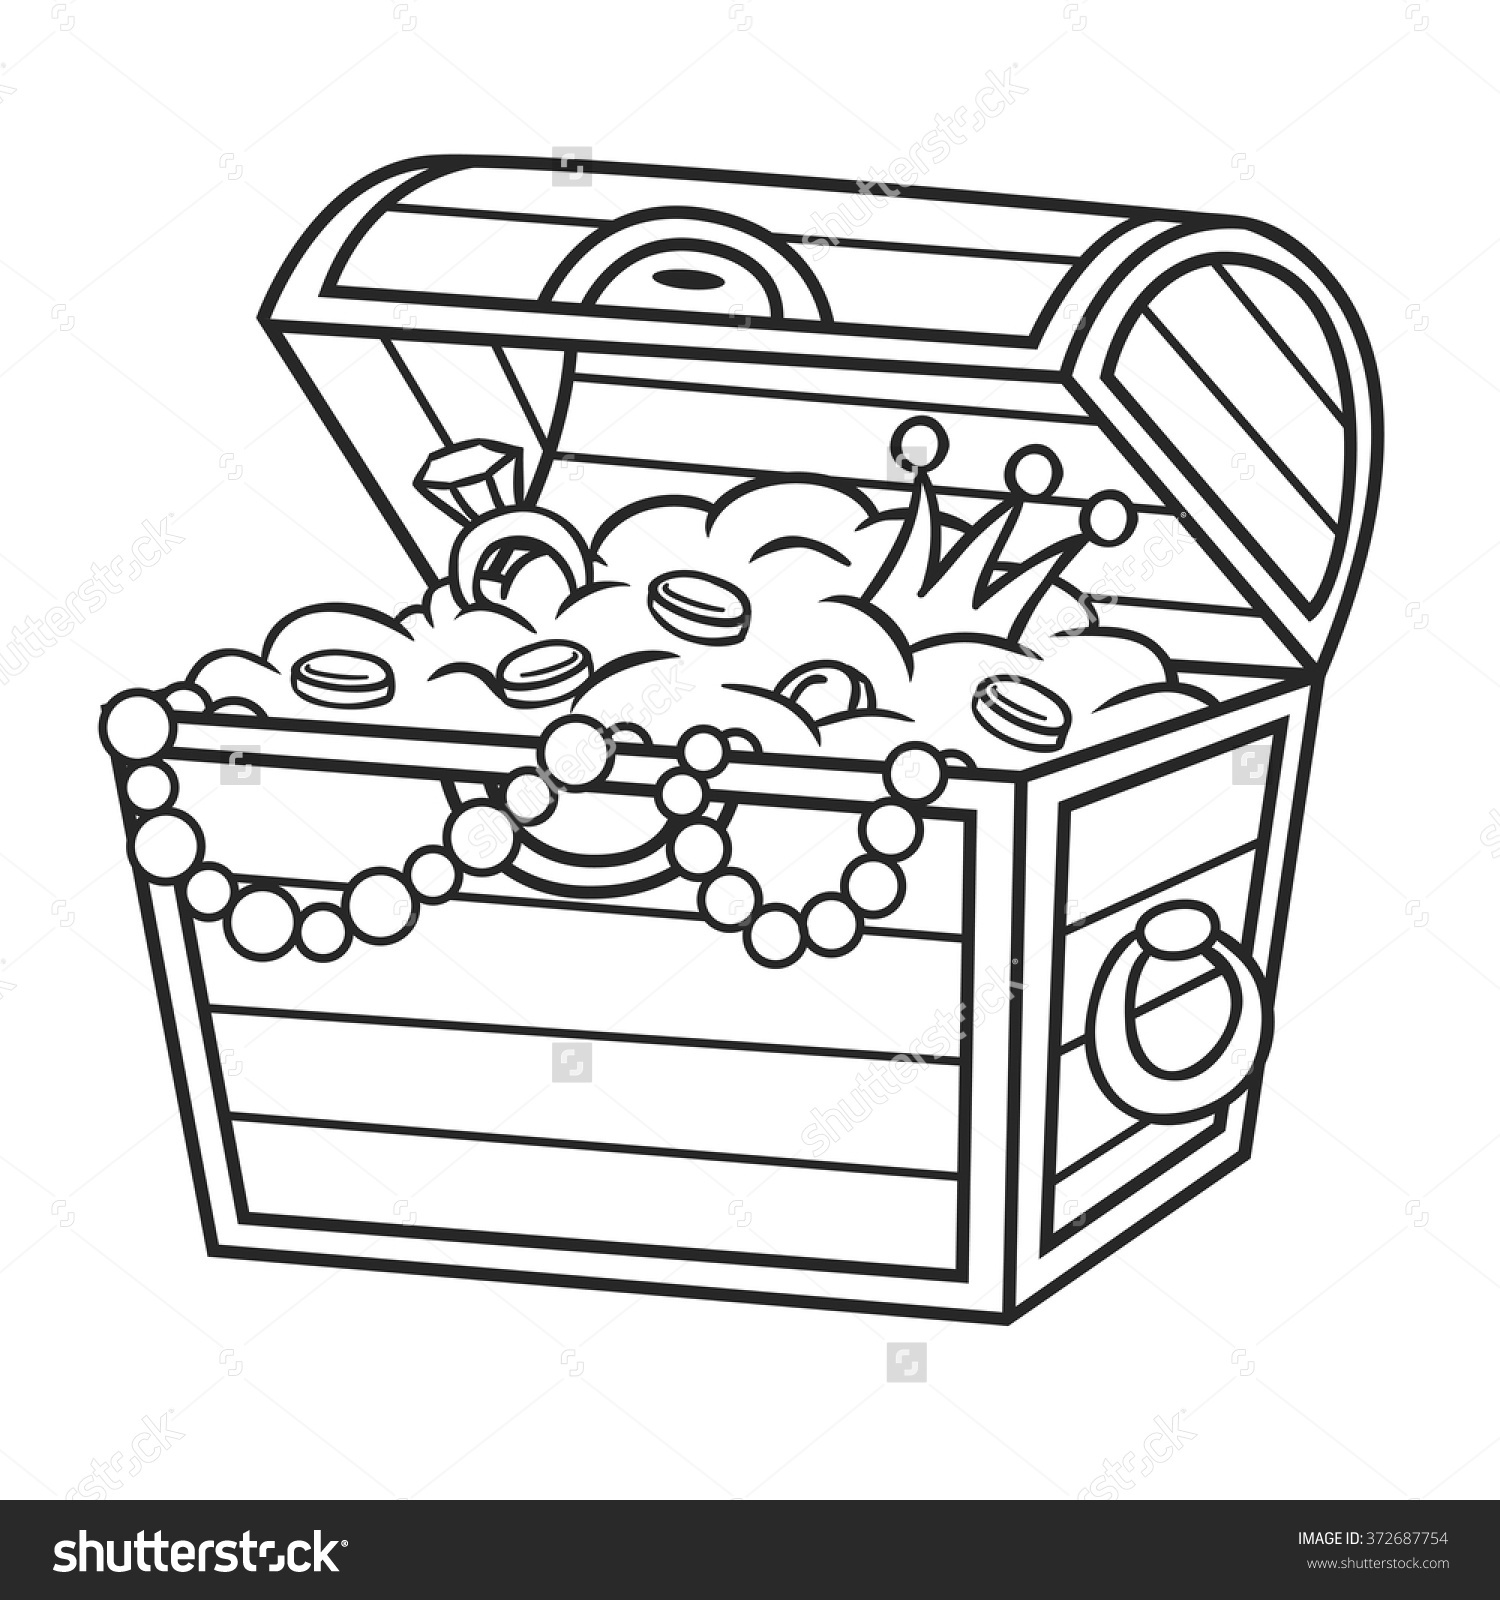 Treasure chest clipart black and white 3 » Clipart Station.